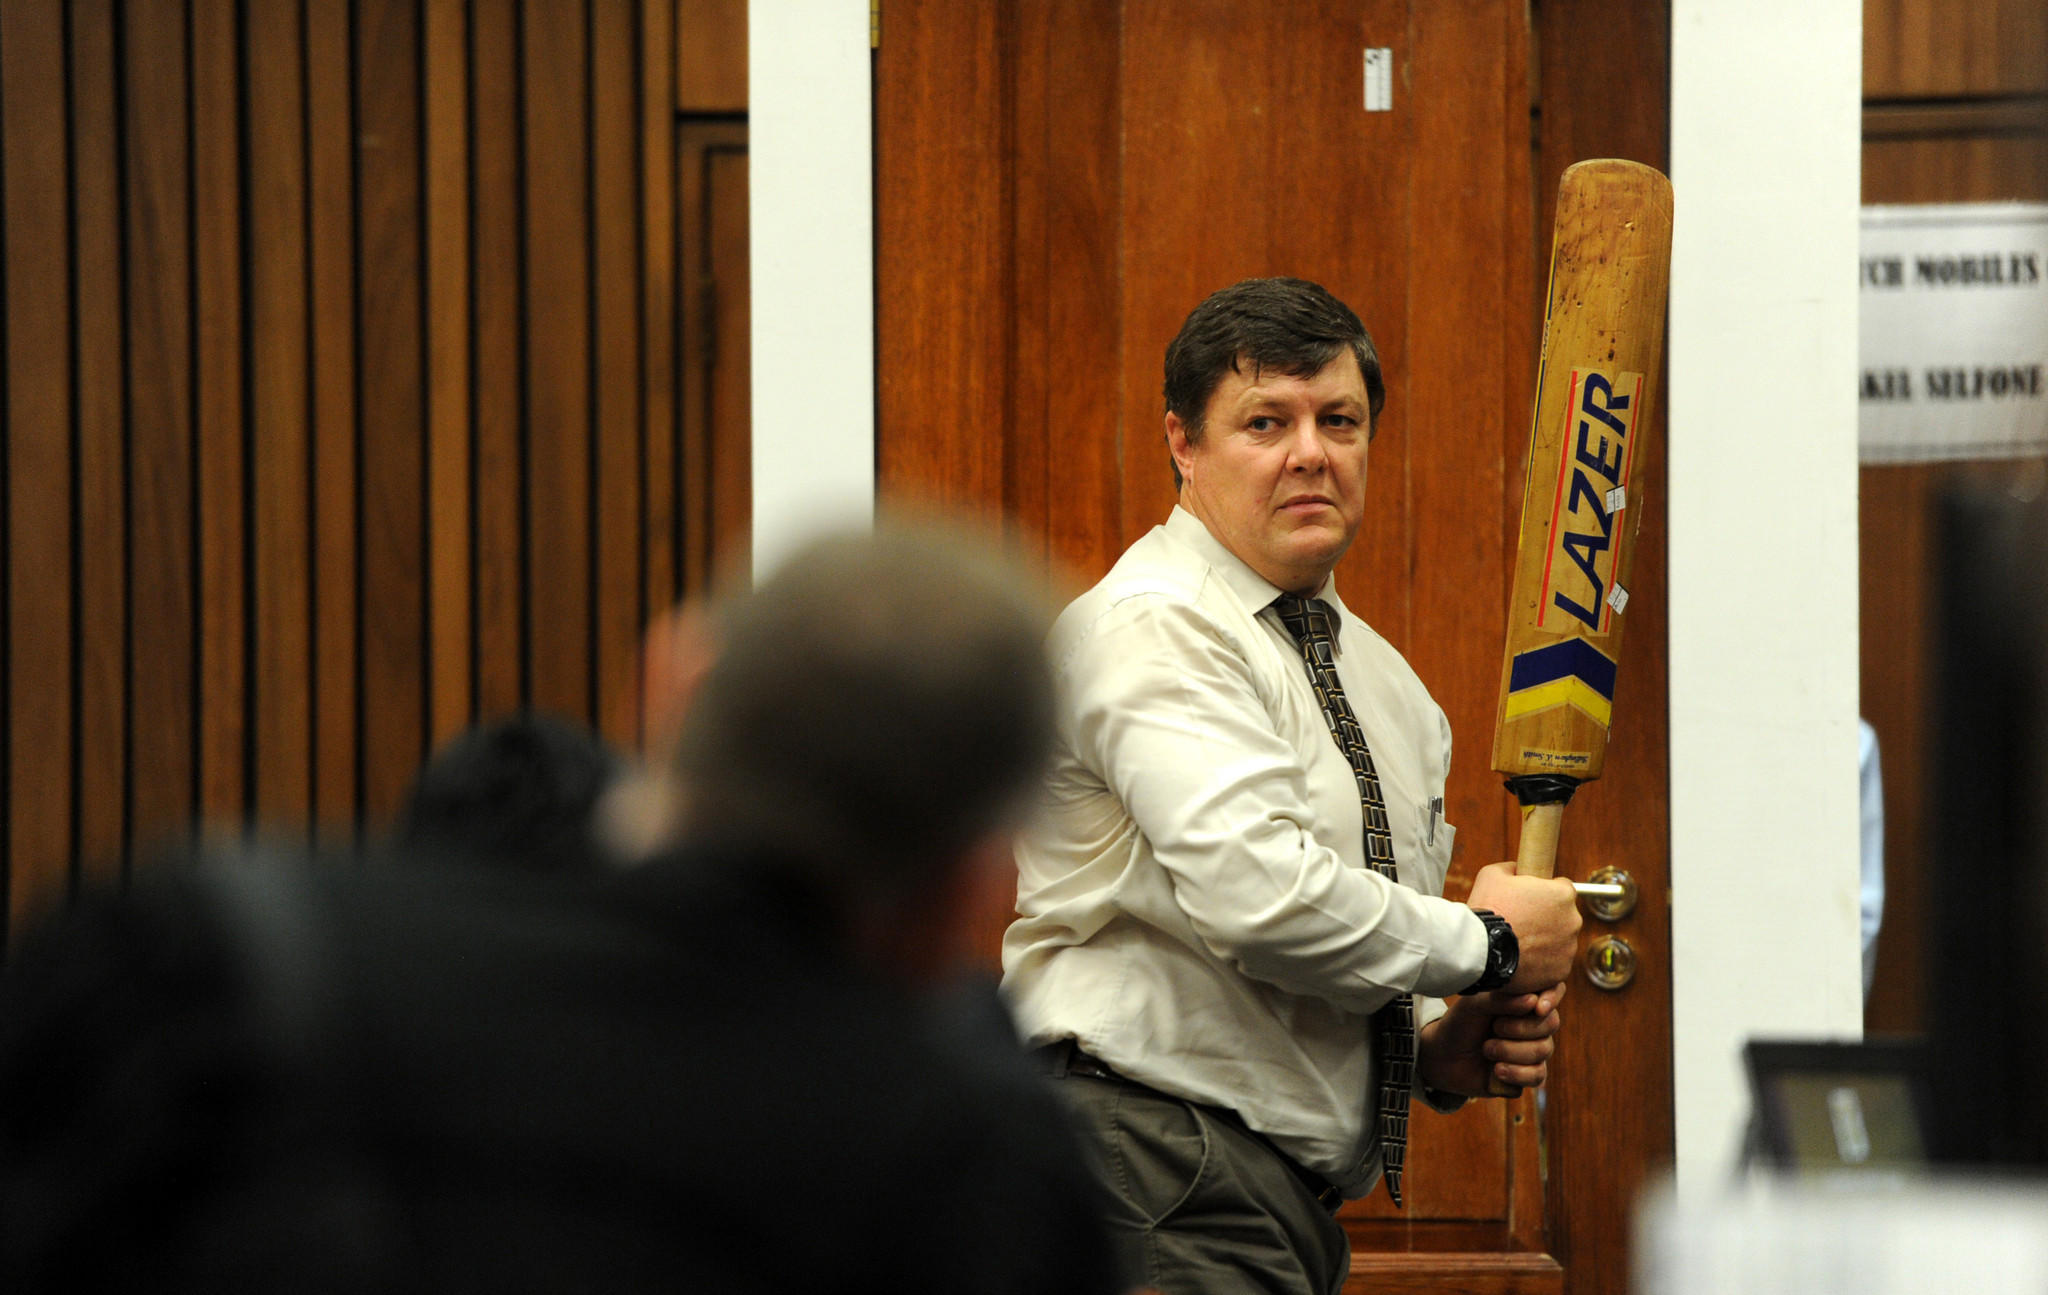 Forensic investigator J.G. Vermeulen, with a cricket bat in hand, on Wednesday demonstrates how the door through which defendant Oscar Pistorius shot and killed his girlfriend could have been broken down with the bat.